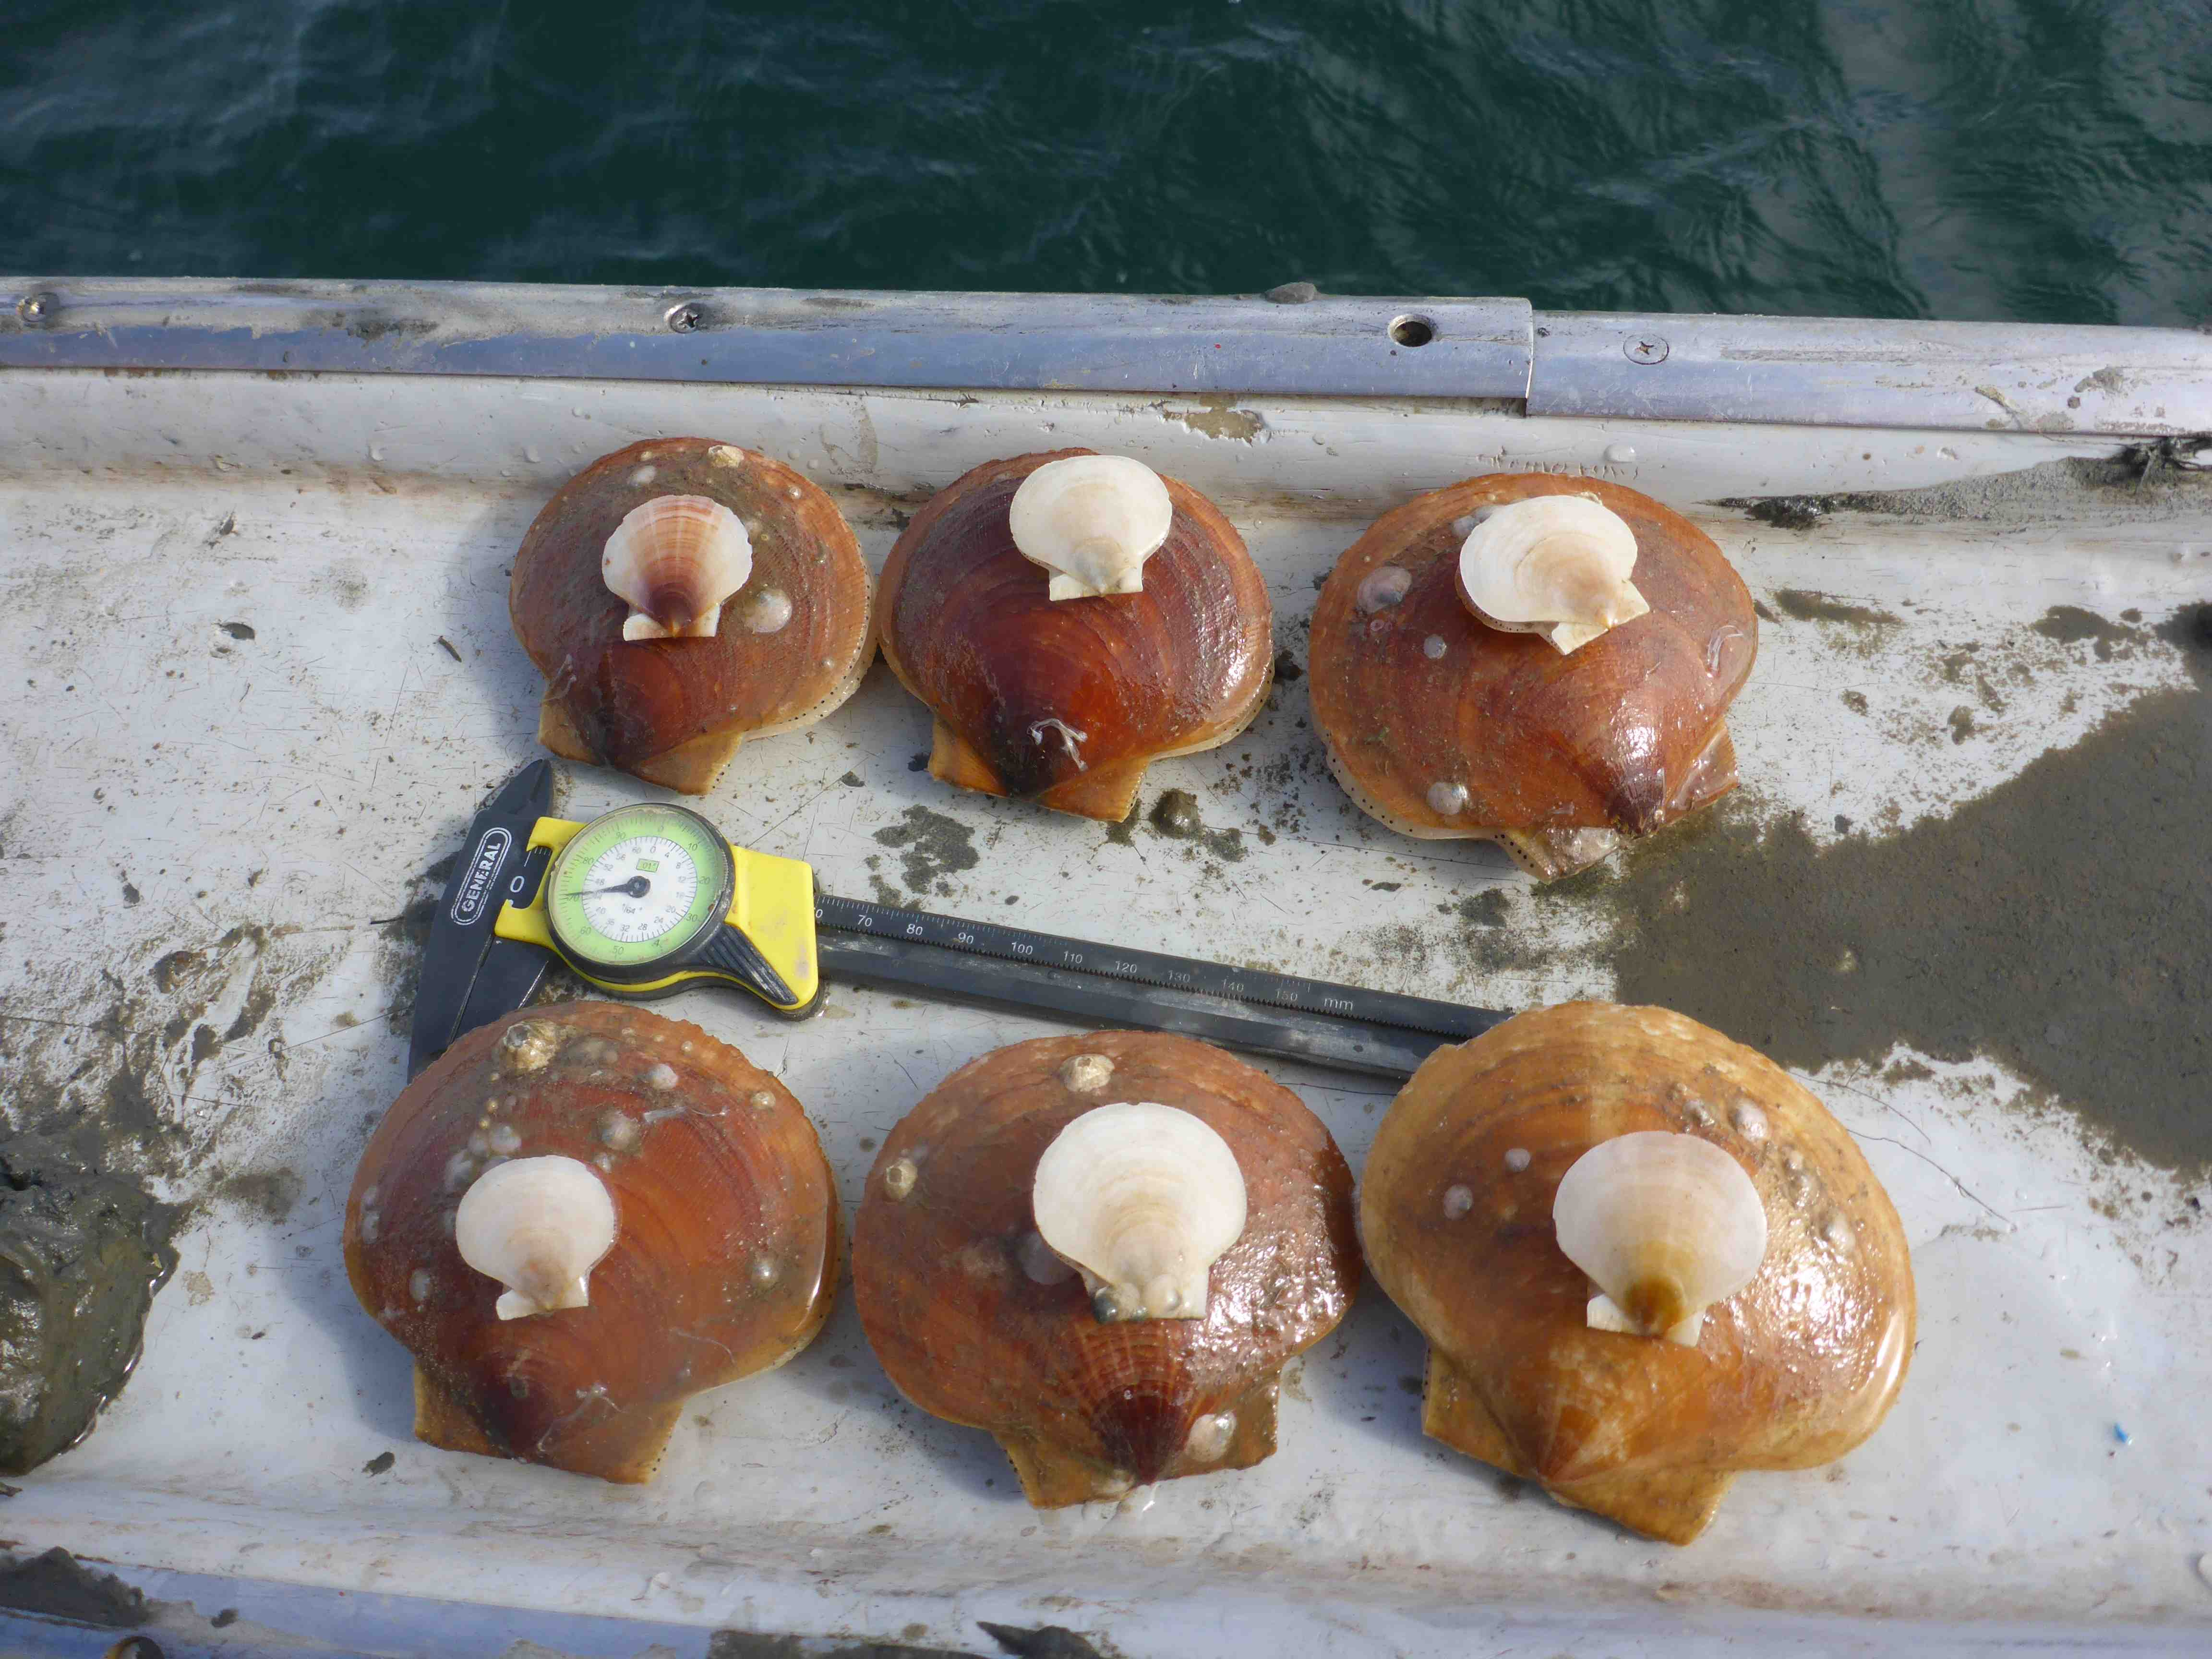 Six small scallops on top of six large scallops with measuring tool